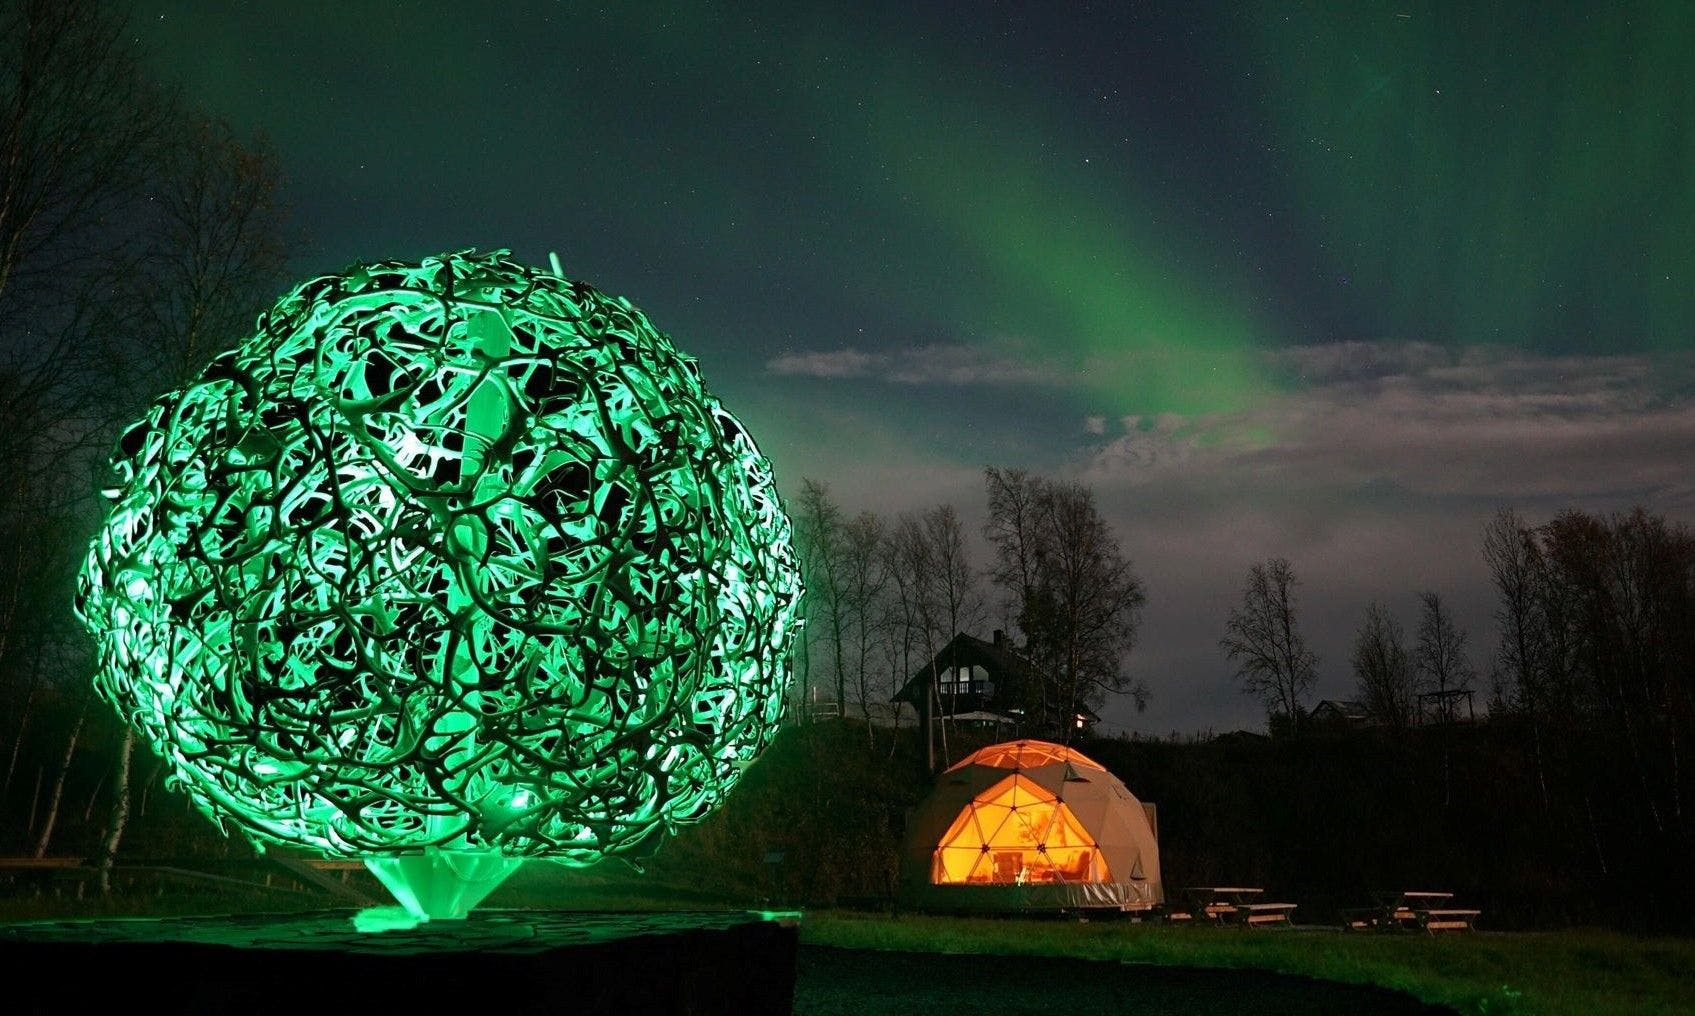 dome i lakselv norge